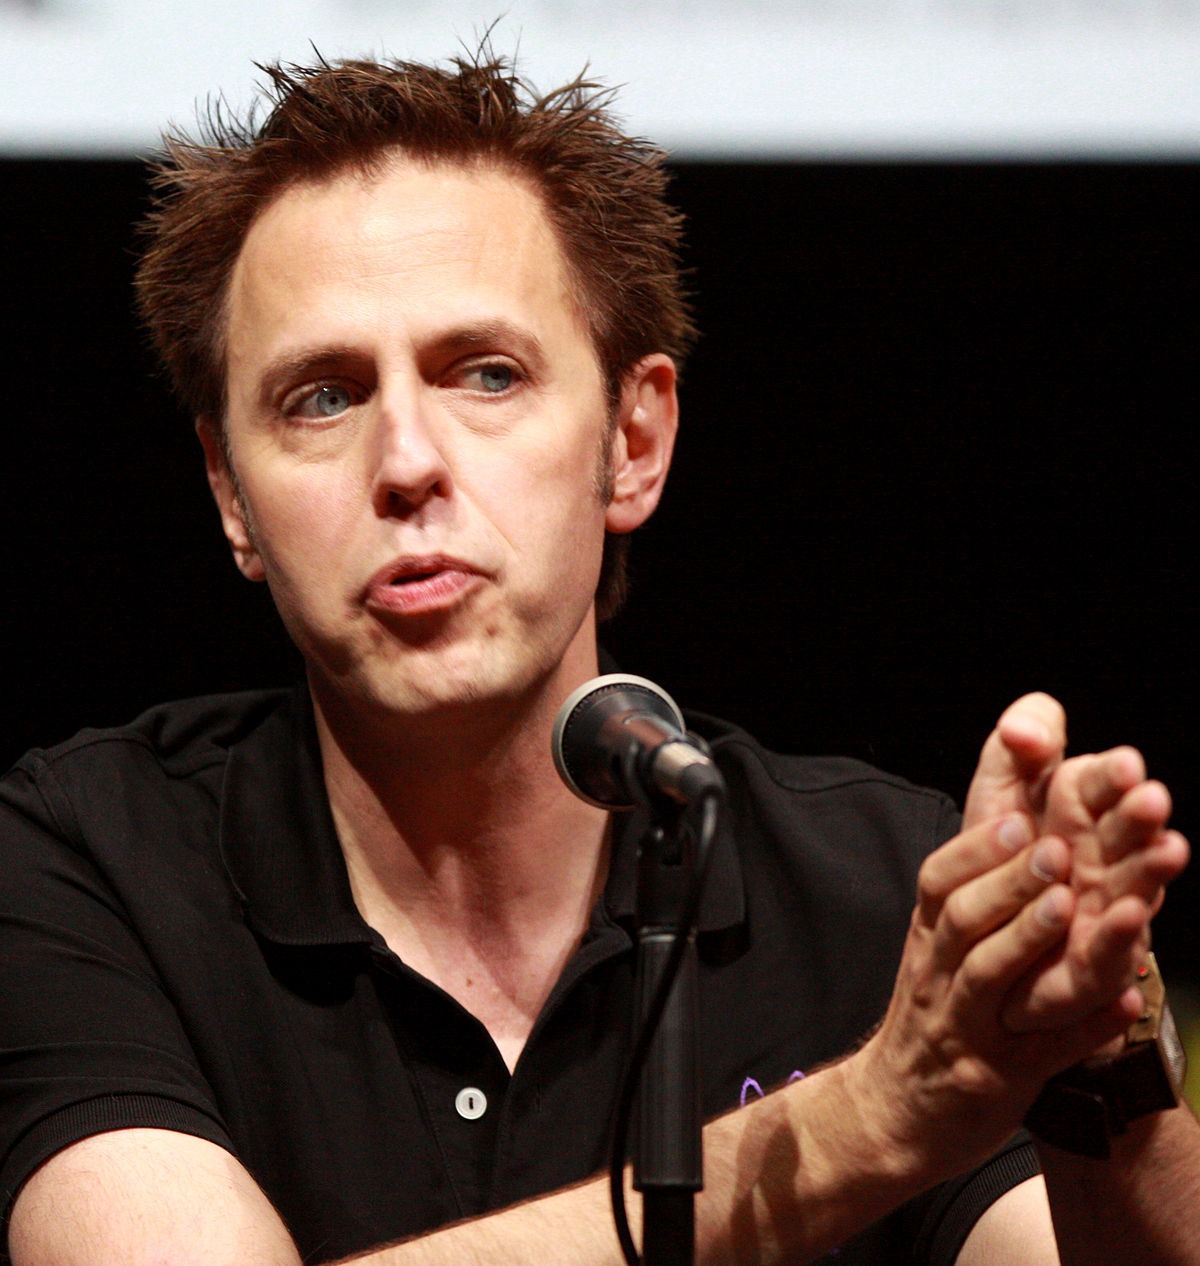 james gunn - photo #12